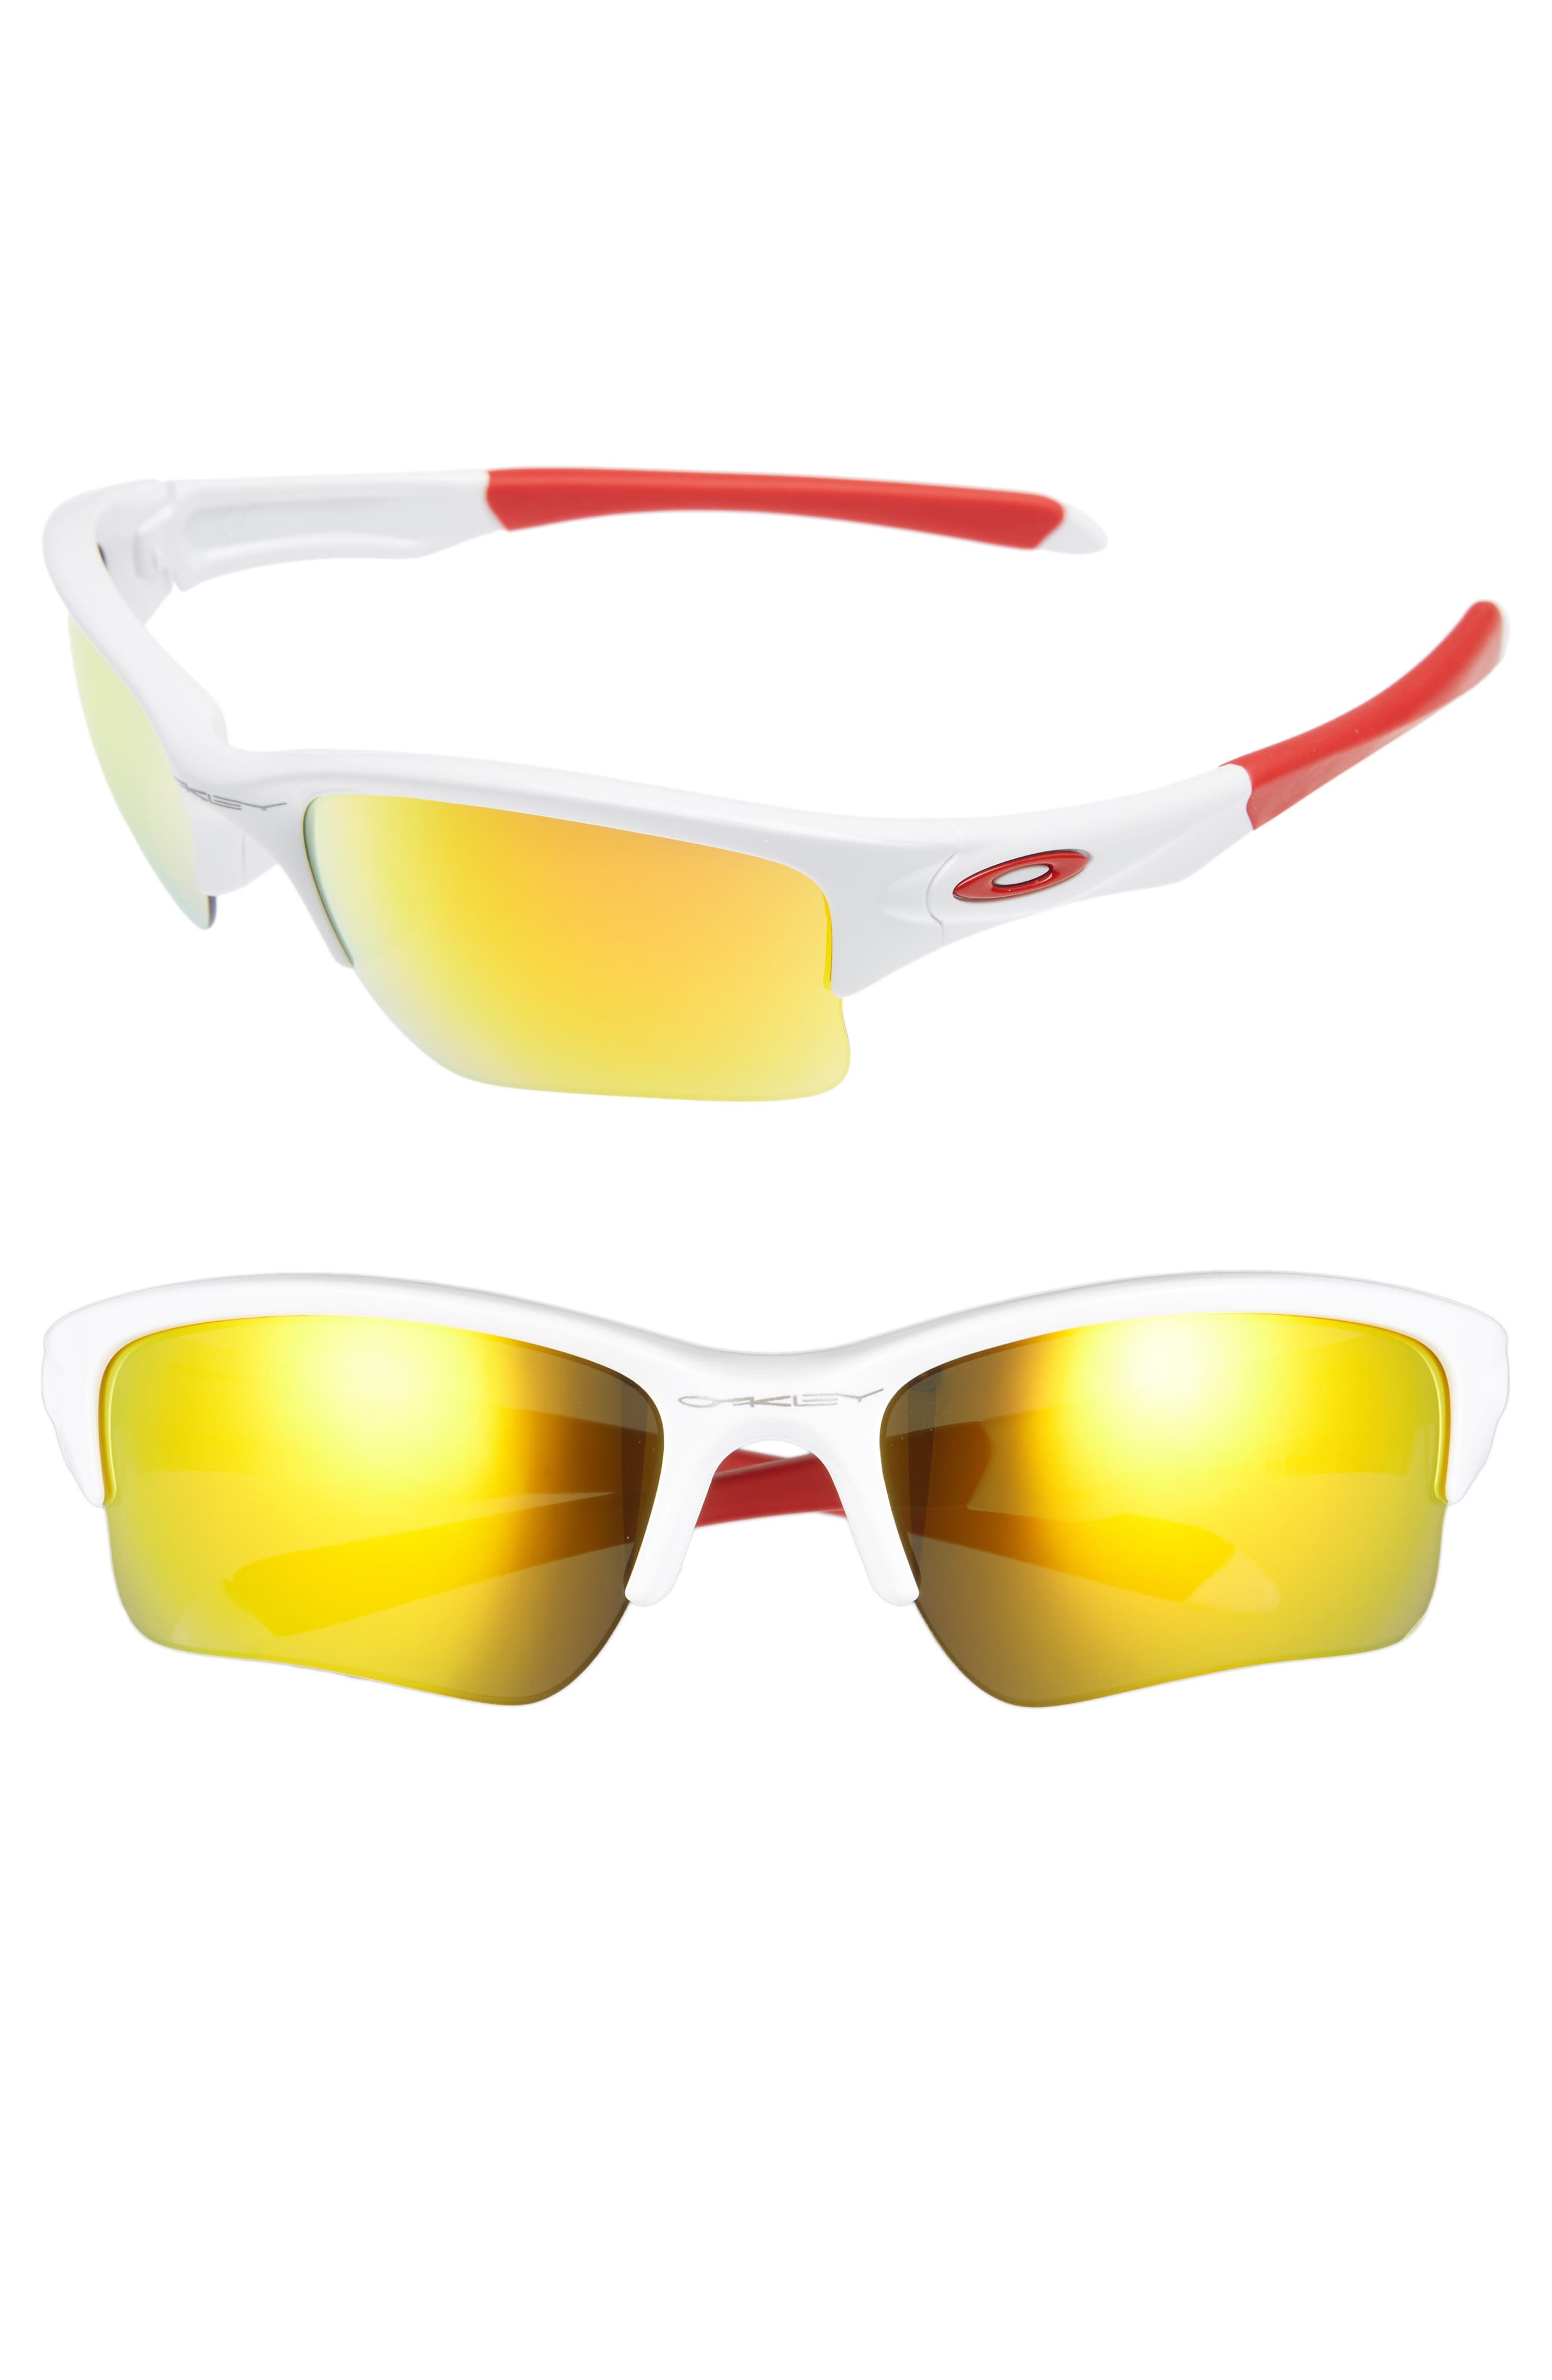 OAKLEY Quarter Jacket PRIZM<sup>™</sup> 61mm Semi-Rimless Sunglasses